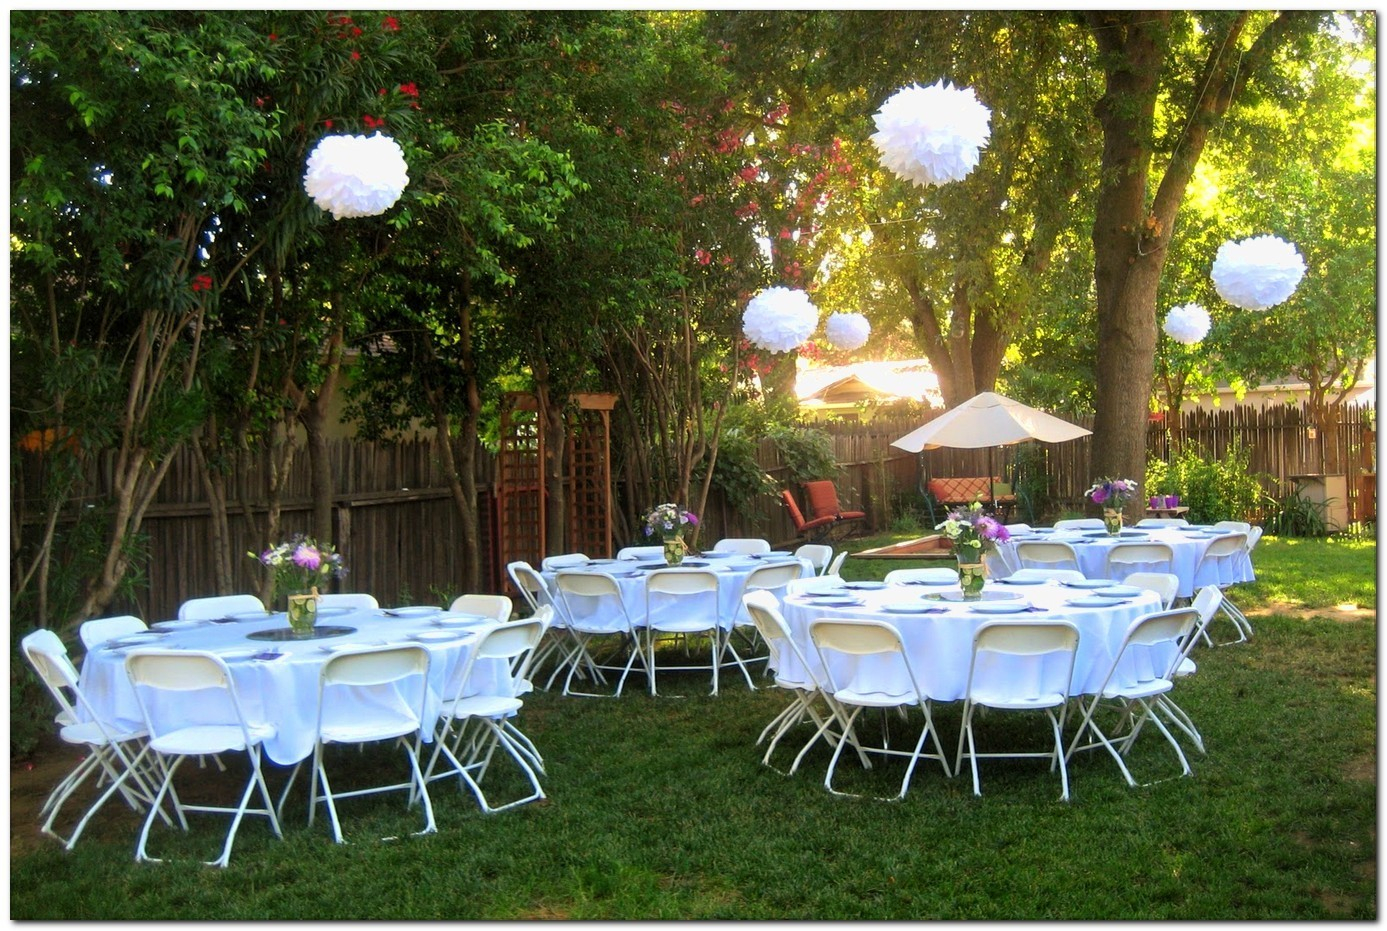 Backyard Graduation Party Ideas 24 Awesome Decorating Badt Us throughout 10 Some of the Coolest Designs of How to Make Graduation Backyard Party Ideas